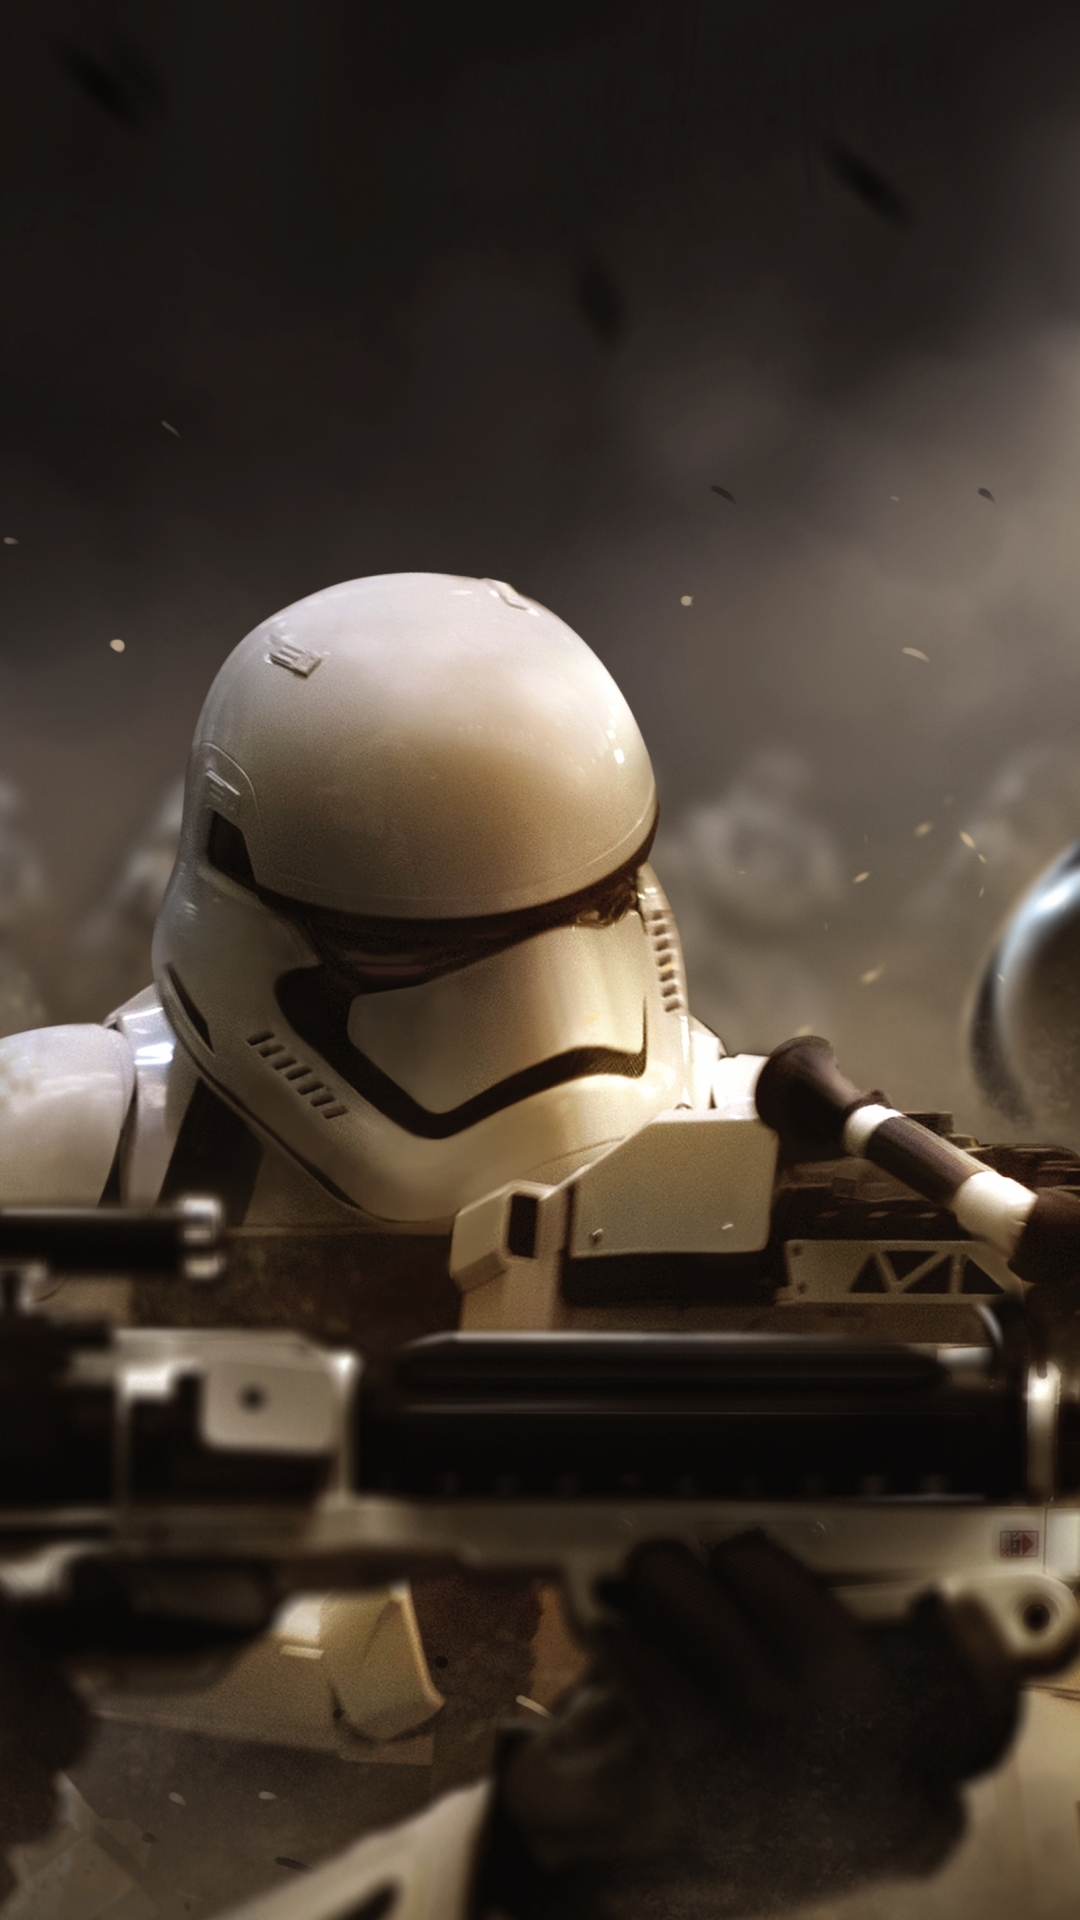 The Force Awakens Iphone Wallpapers Star Wars Live Photos For Iphone 2927198 Hd Wallpaper Backgrounds Download